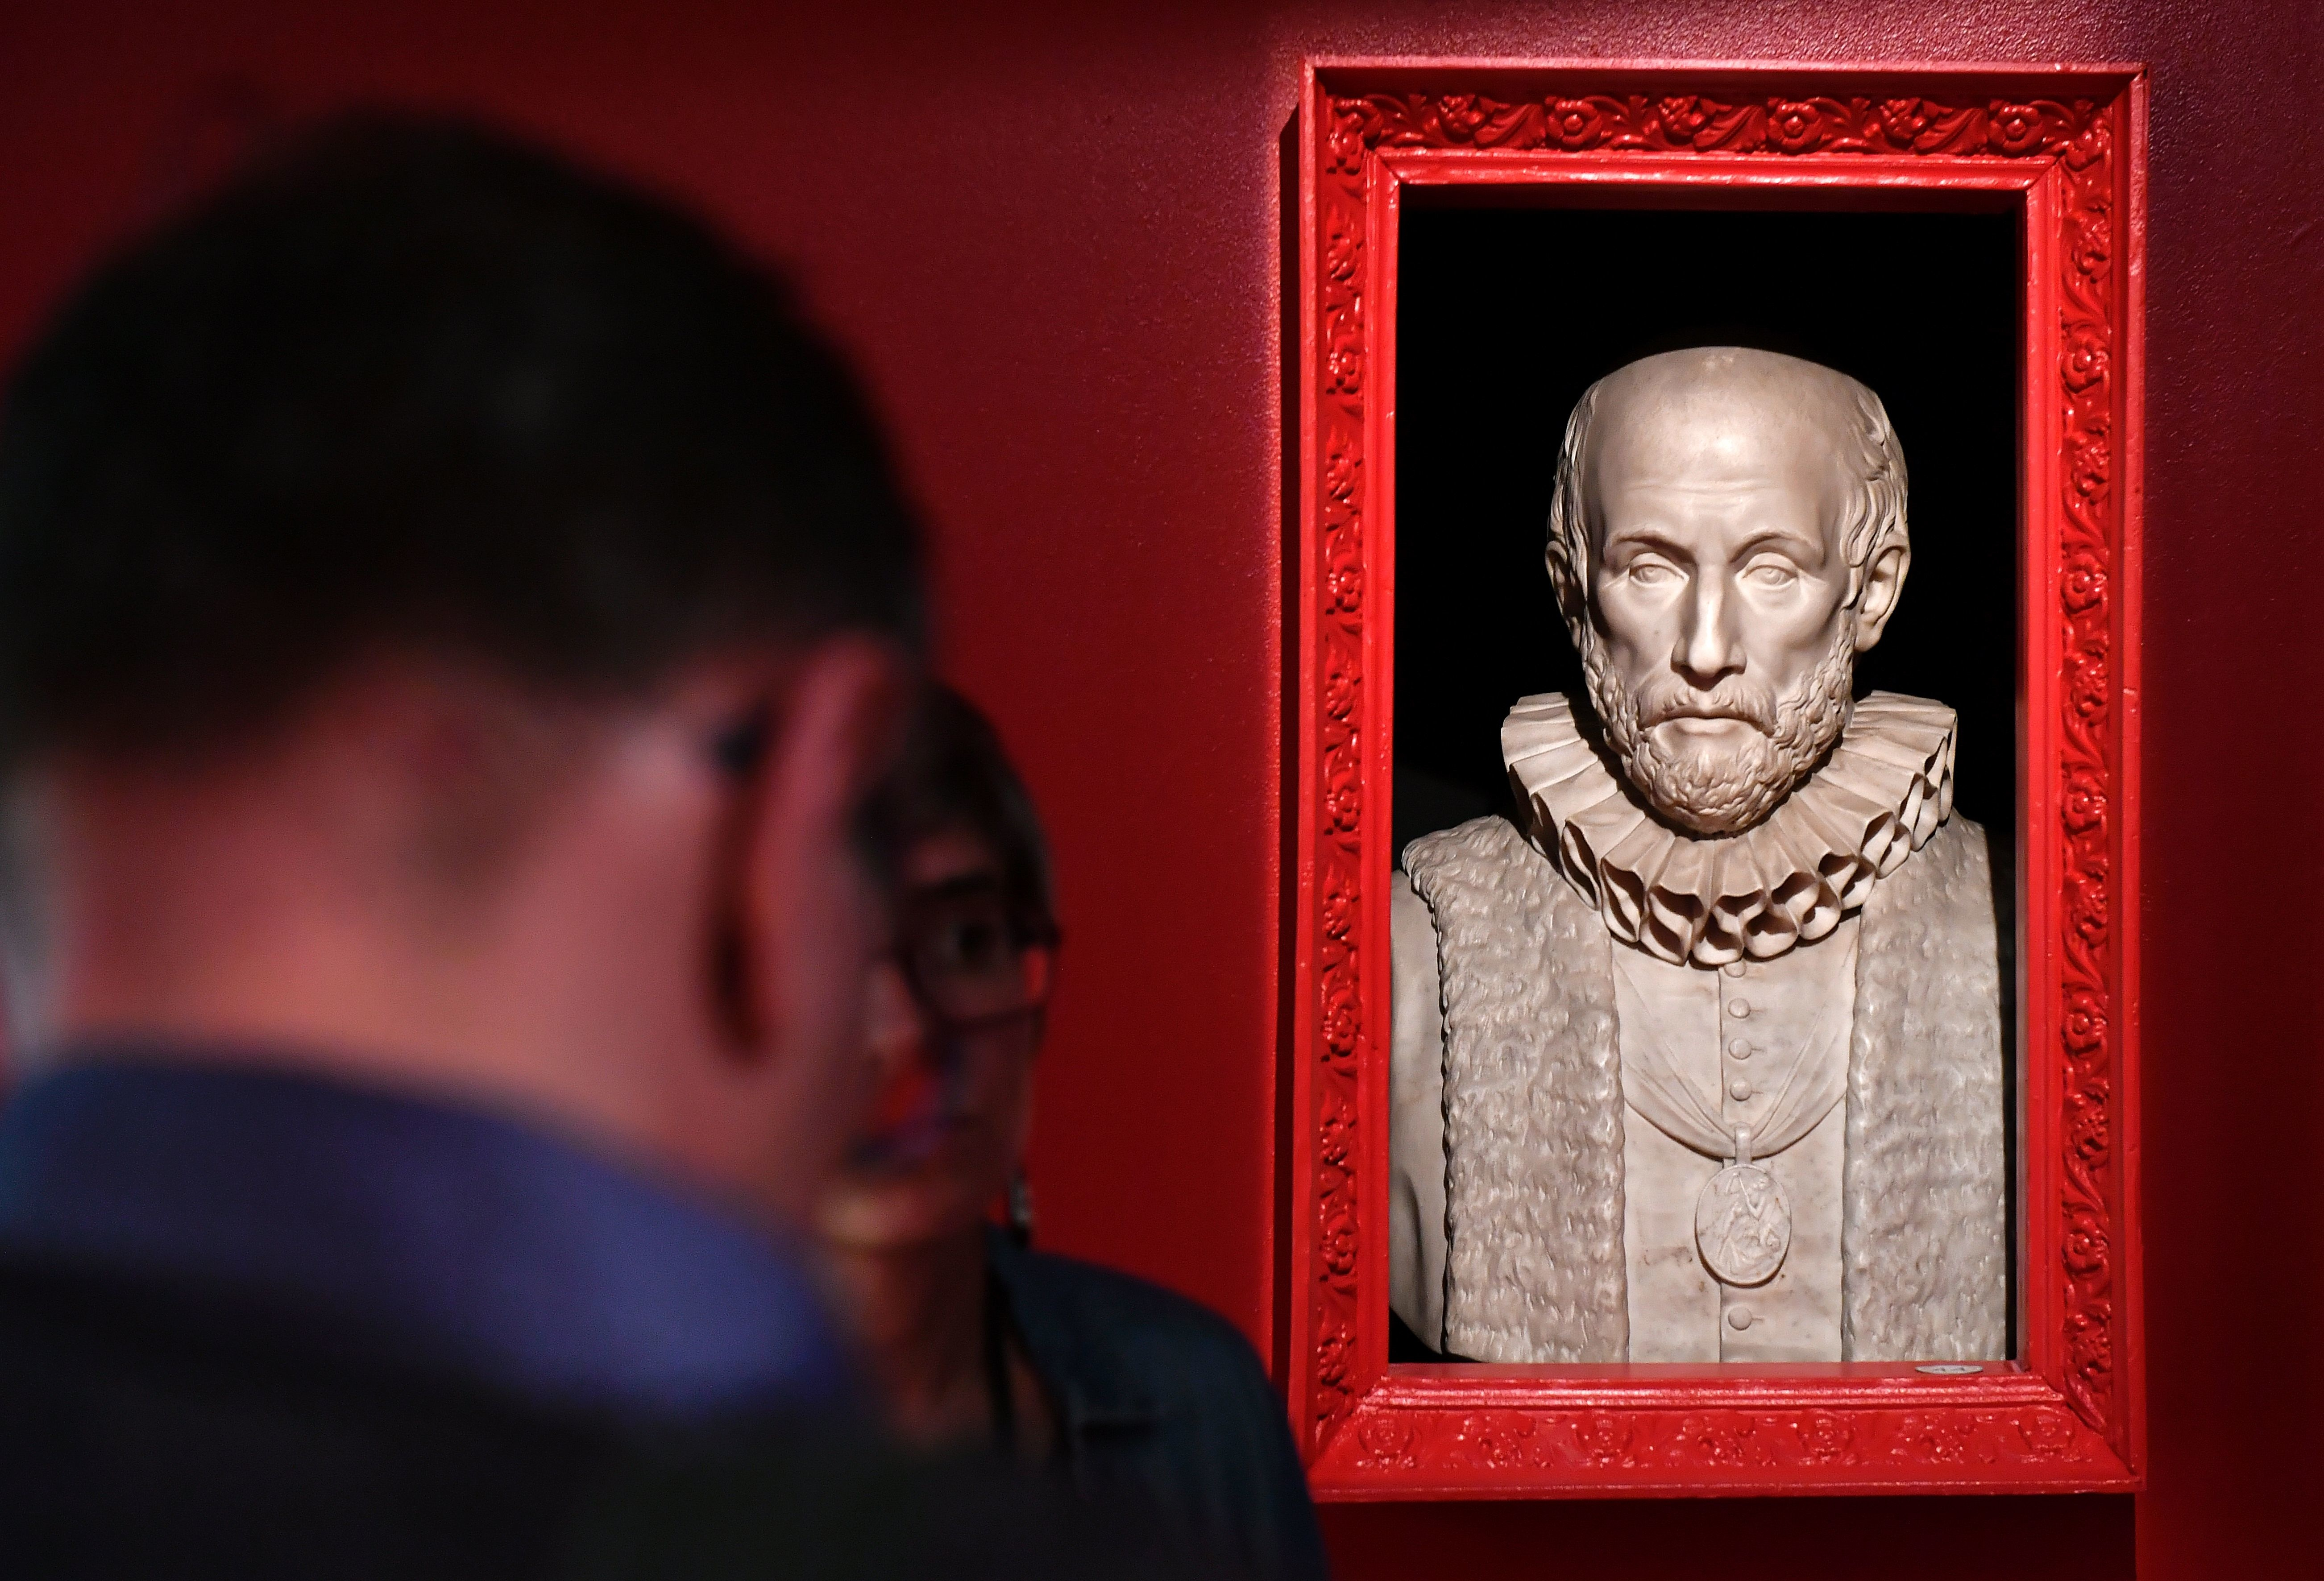 Don't take life so seriously: Montaigne's lessons on the inner life